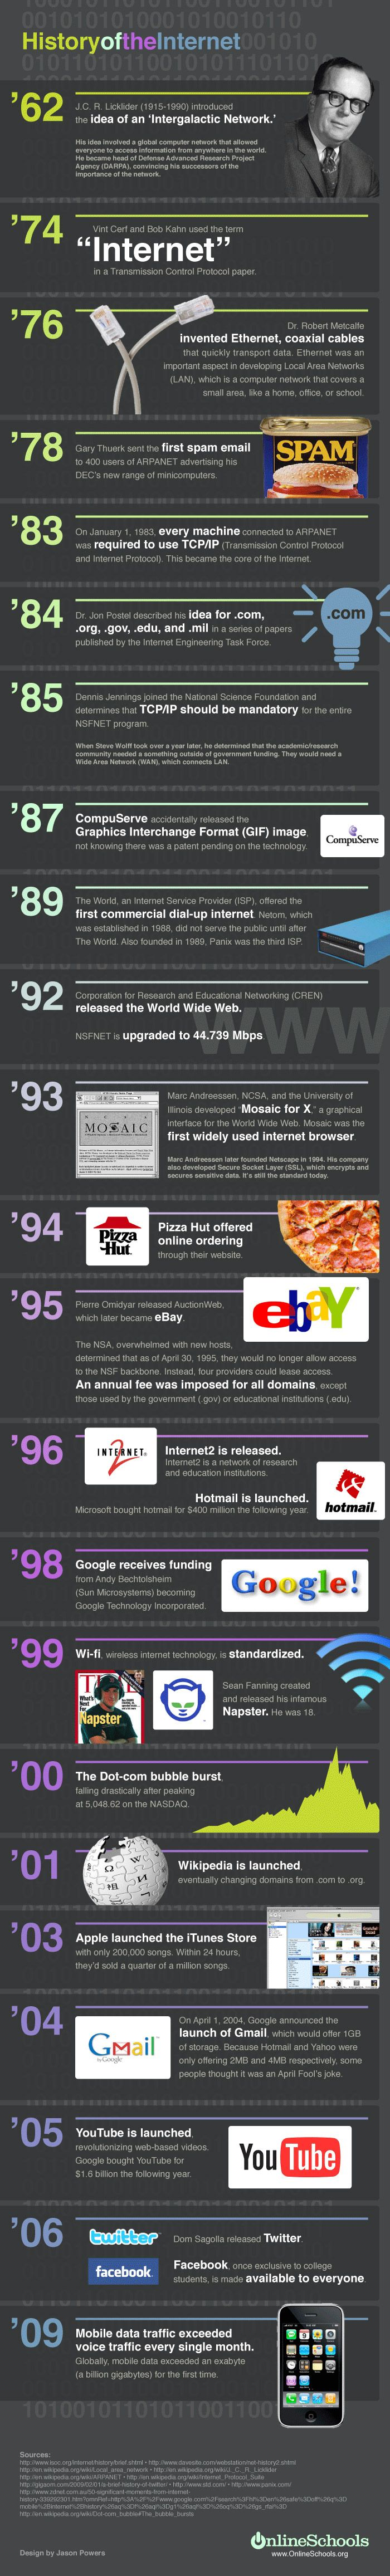 The History of the Internet [infographic]